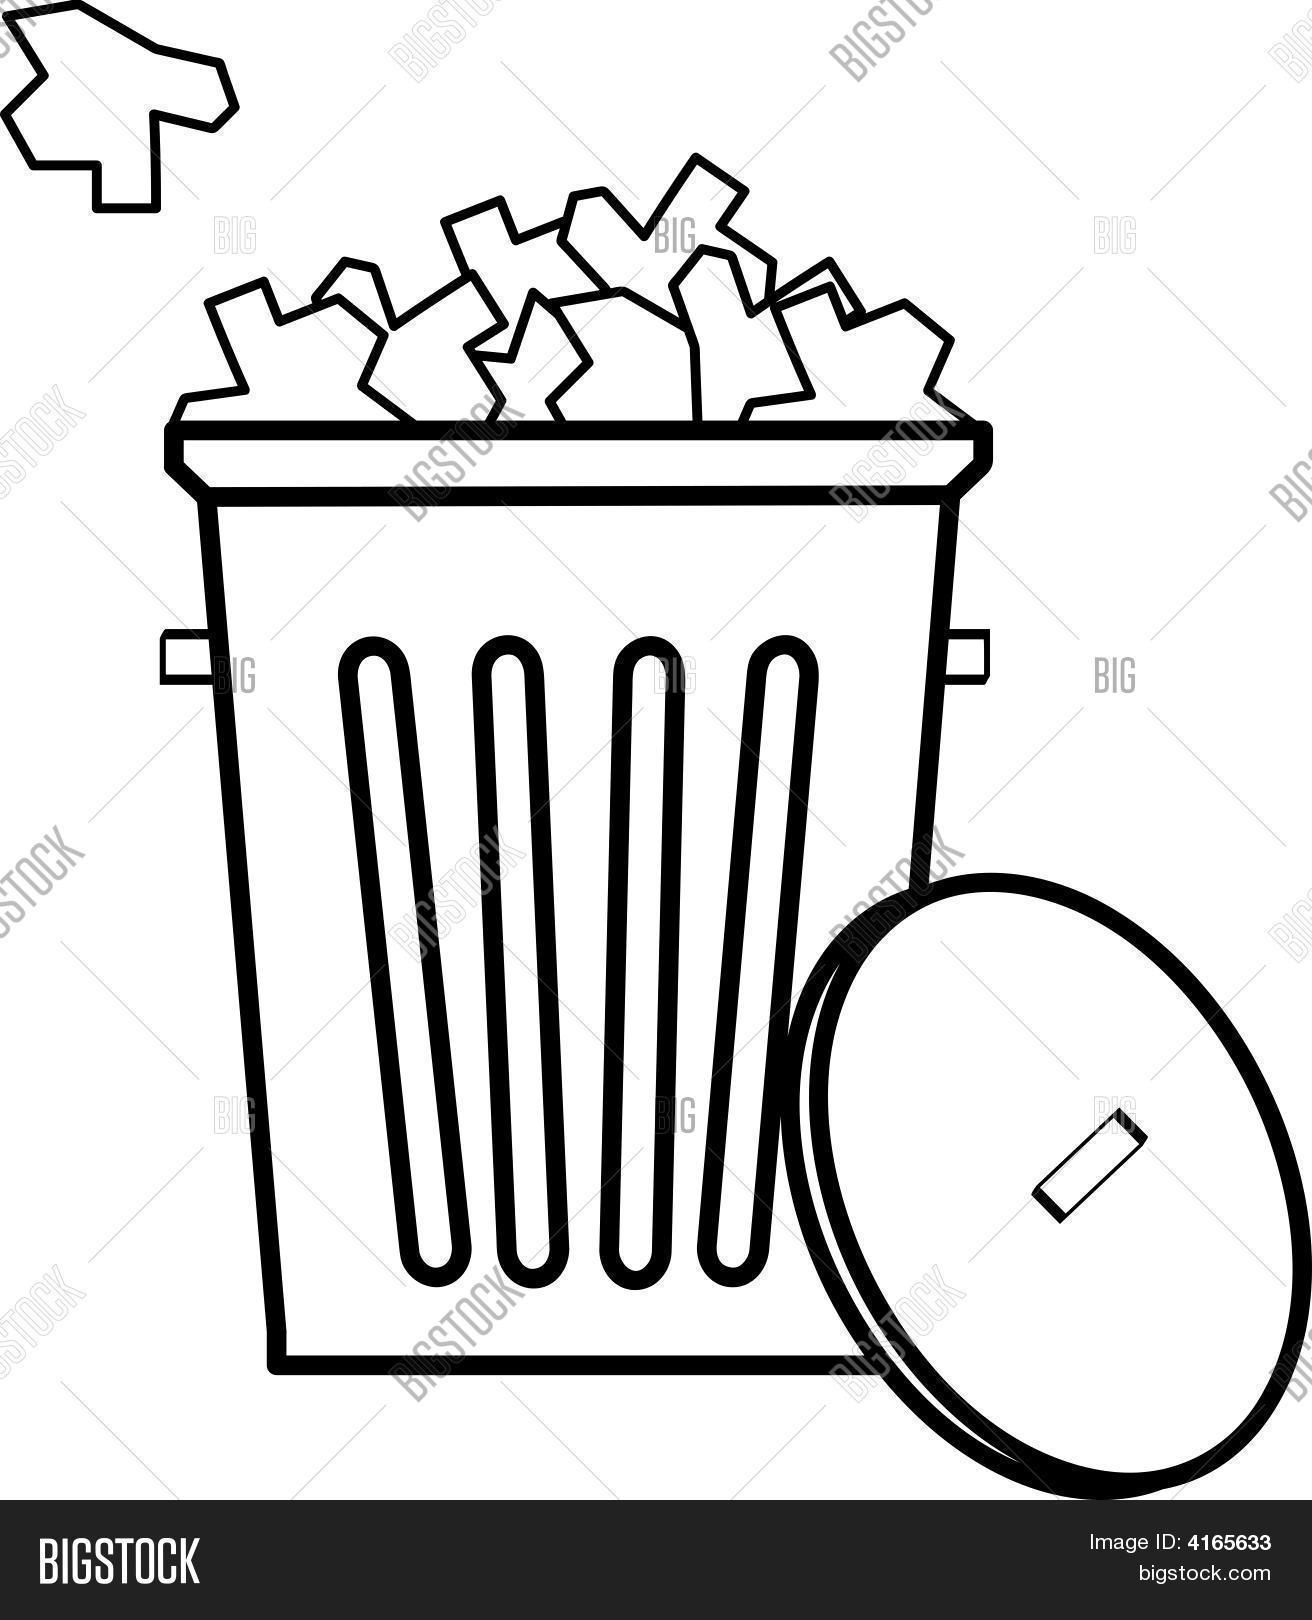 Outline Of Garbage Can Full With Garbage. Stock Vector & Stock.